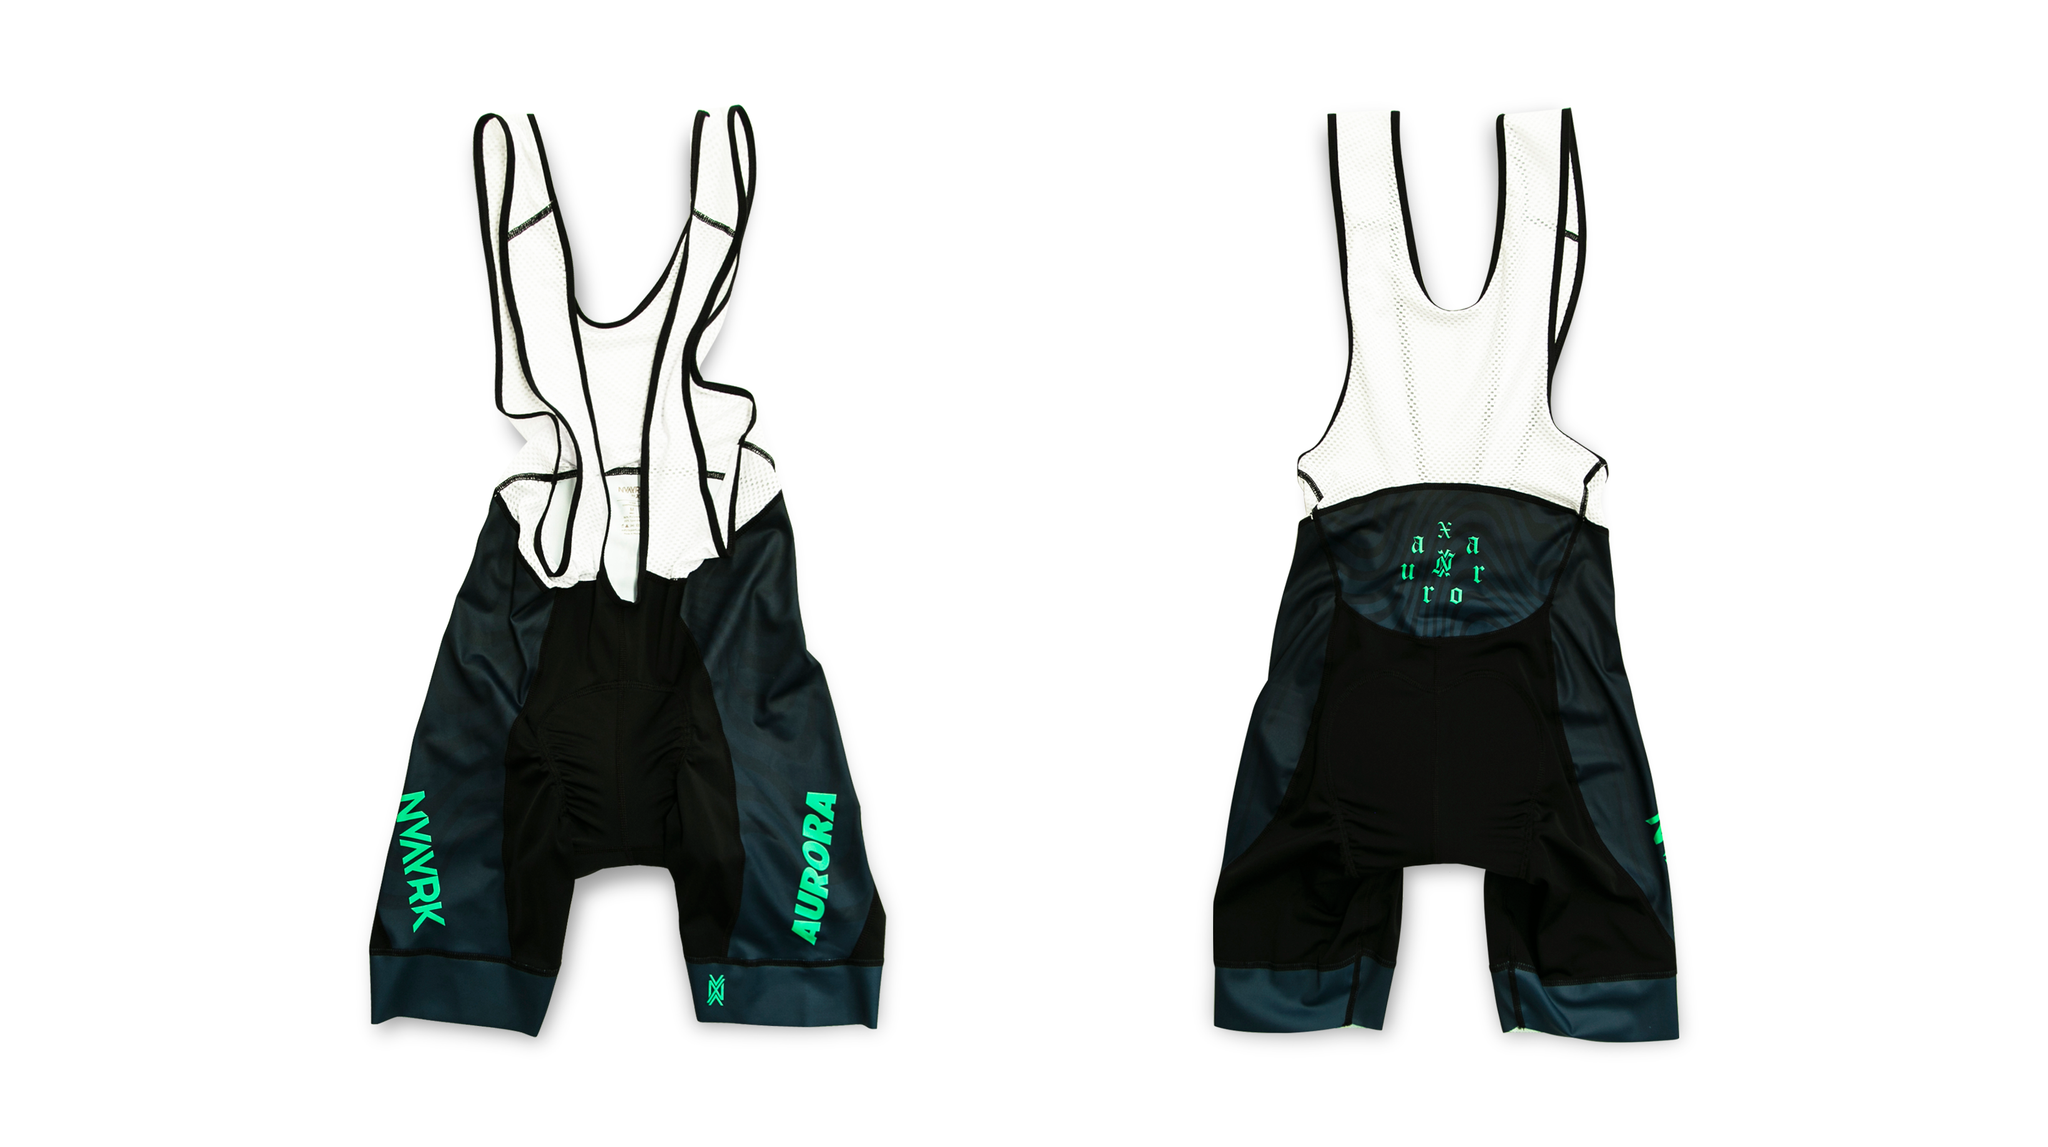 AURORA + RAD RACE X NVAYRK Cycling Kit